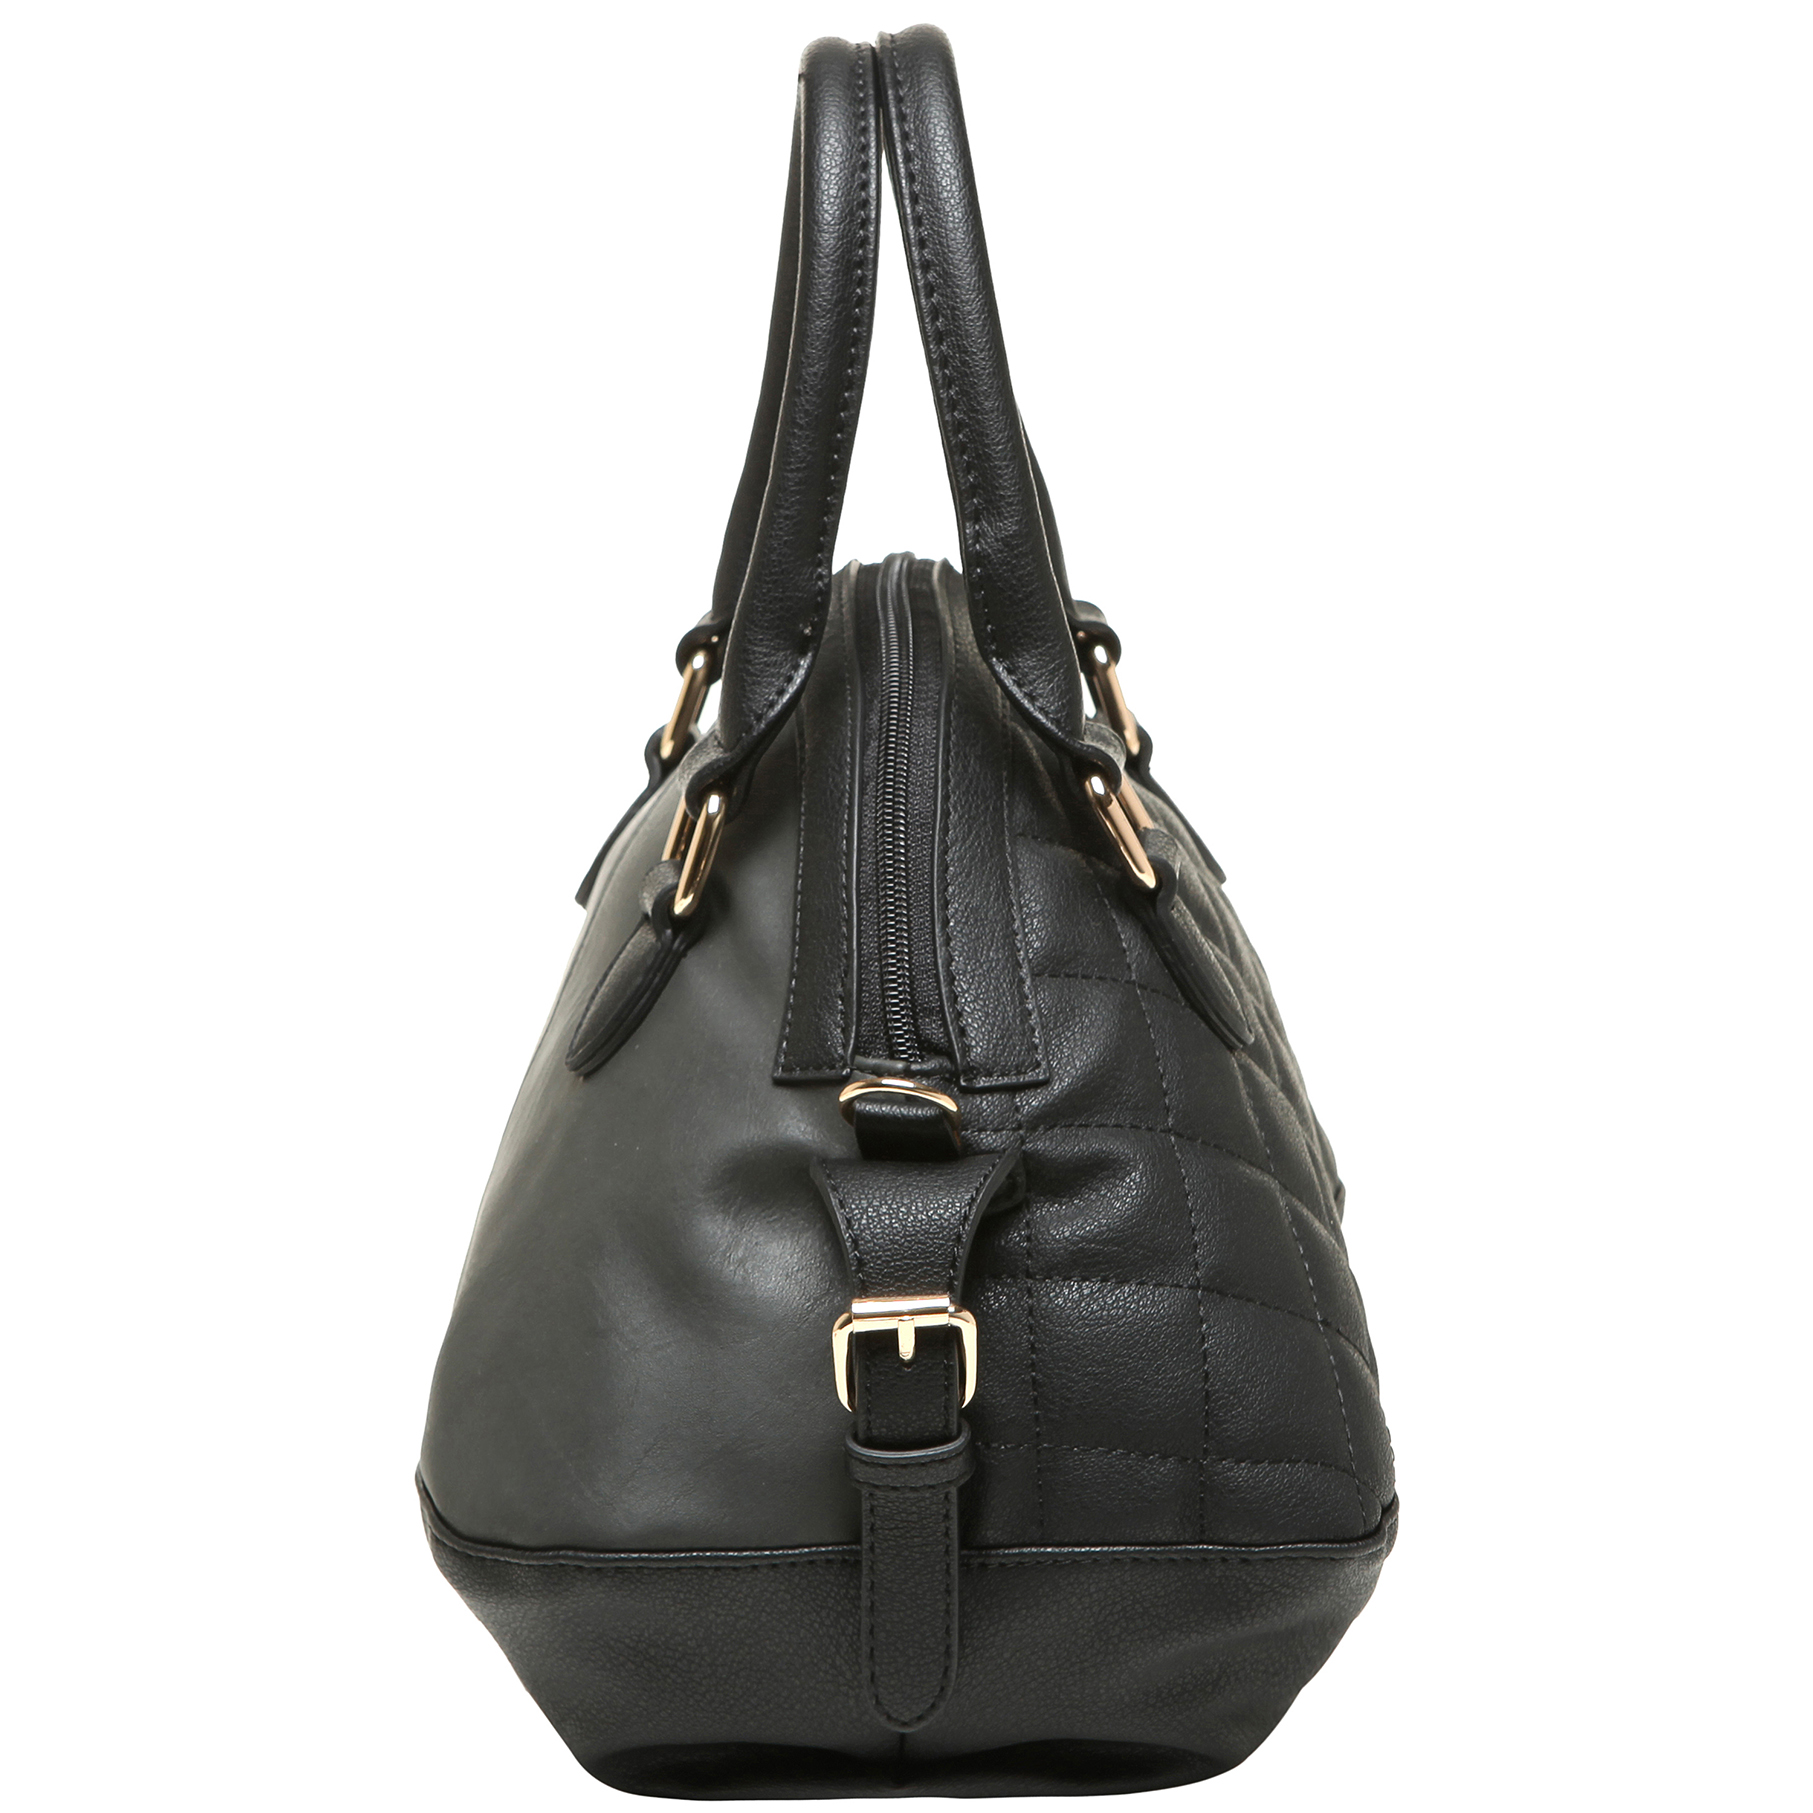 imani black bowler style small quilted tote purse side image